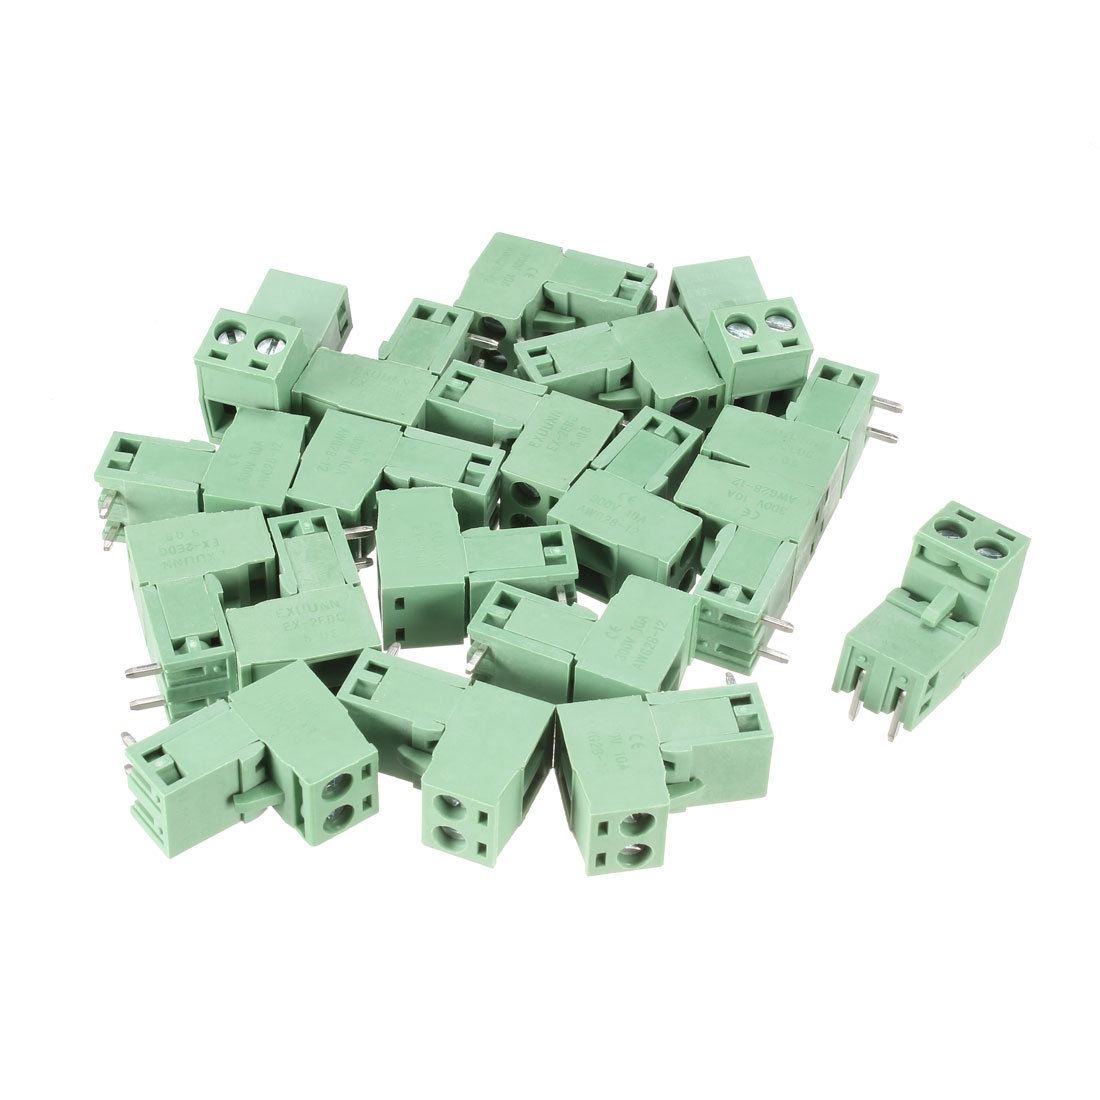 20 Pcs Green HT5.08 HT508K 5.08mm 2Position Right Angle 2Pin Pluggable Screw Terminal Block Connector 300V 10A